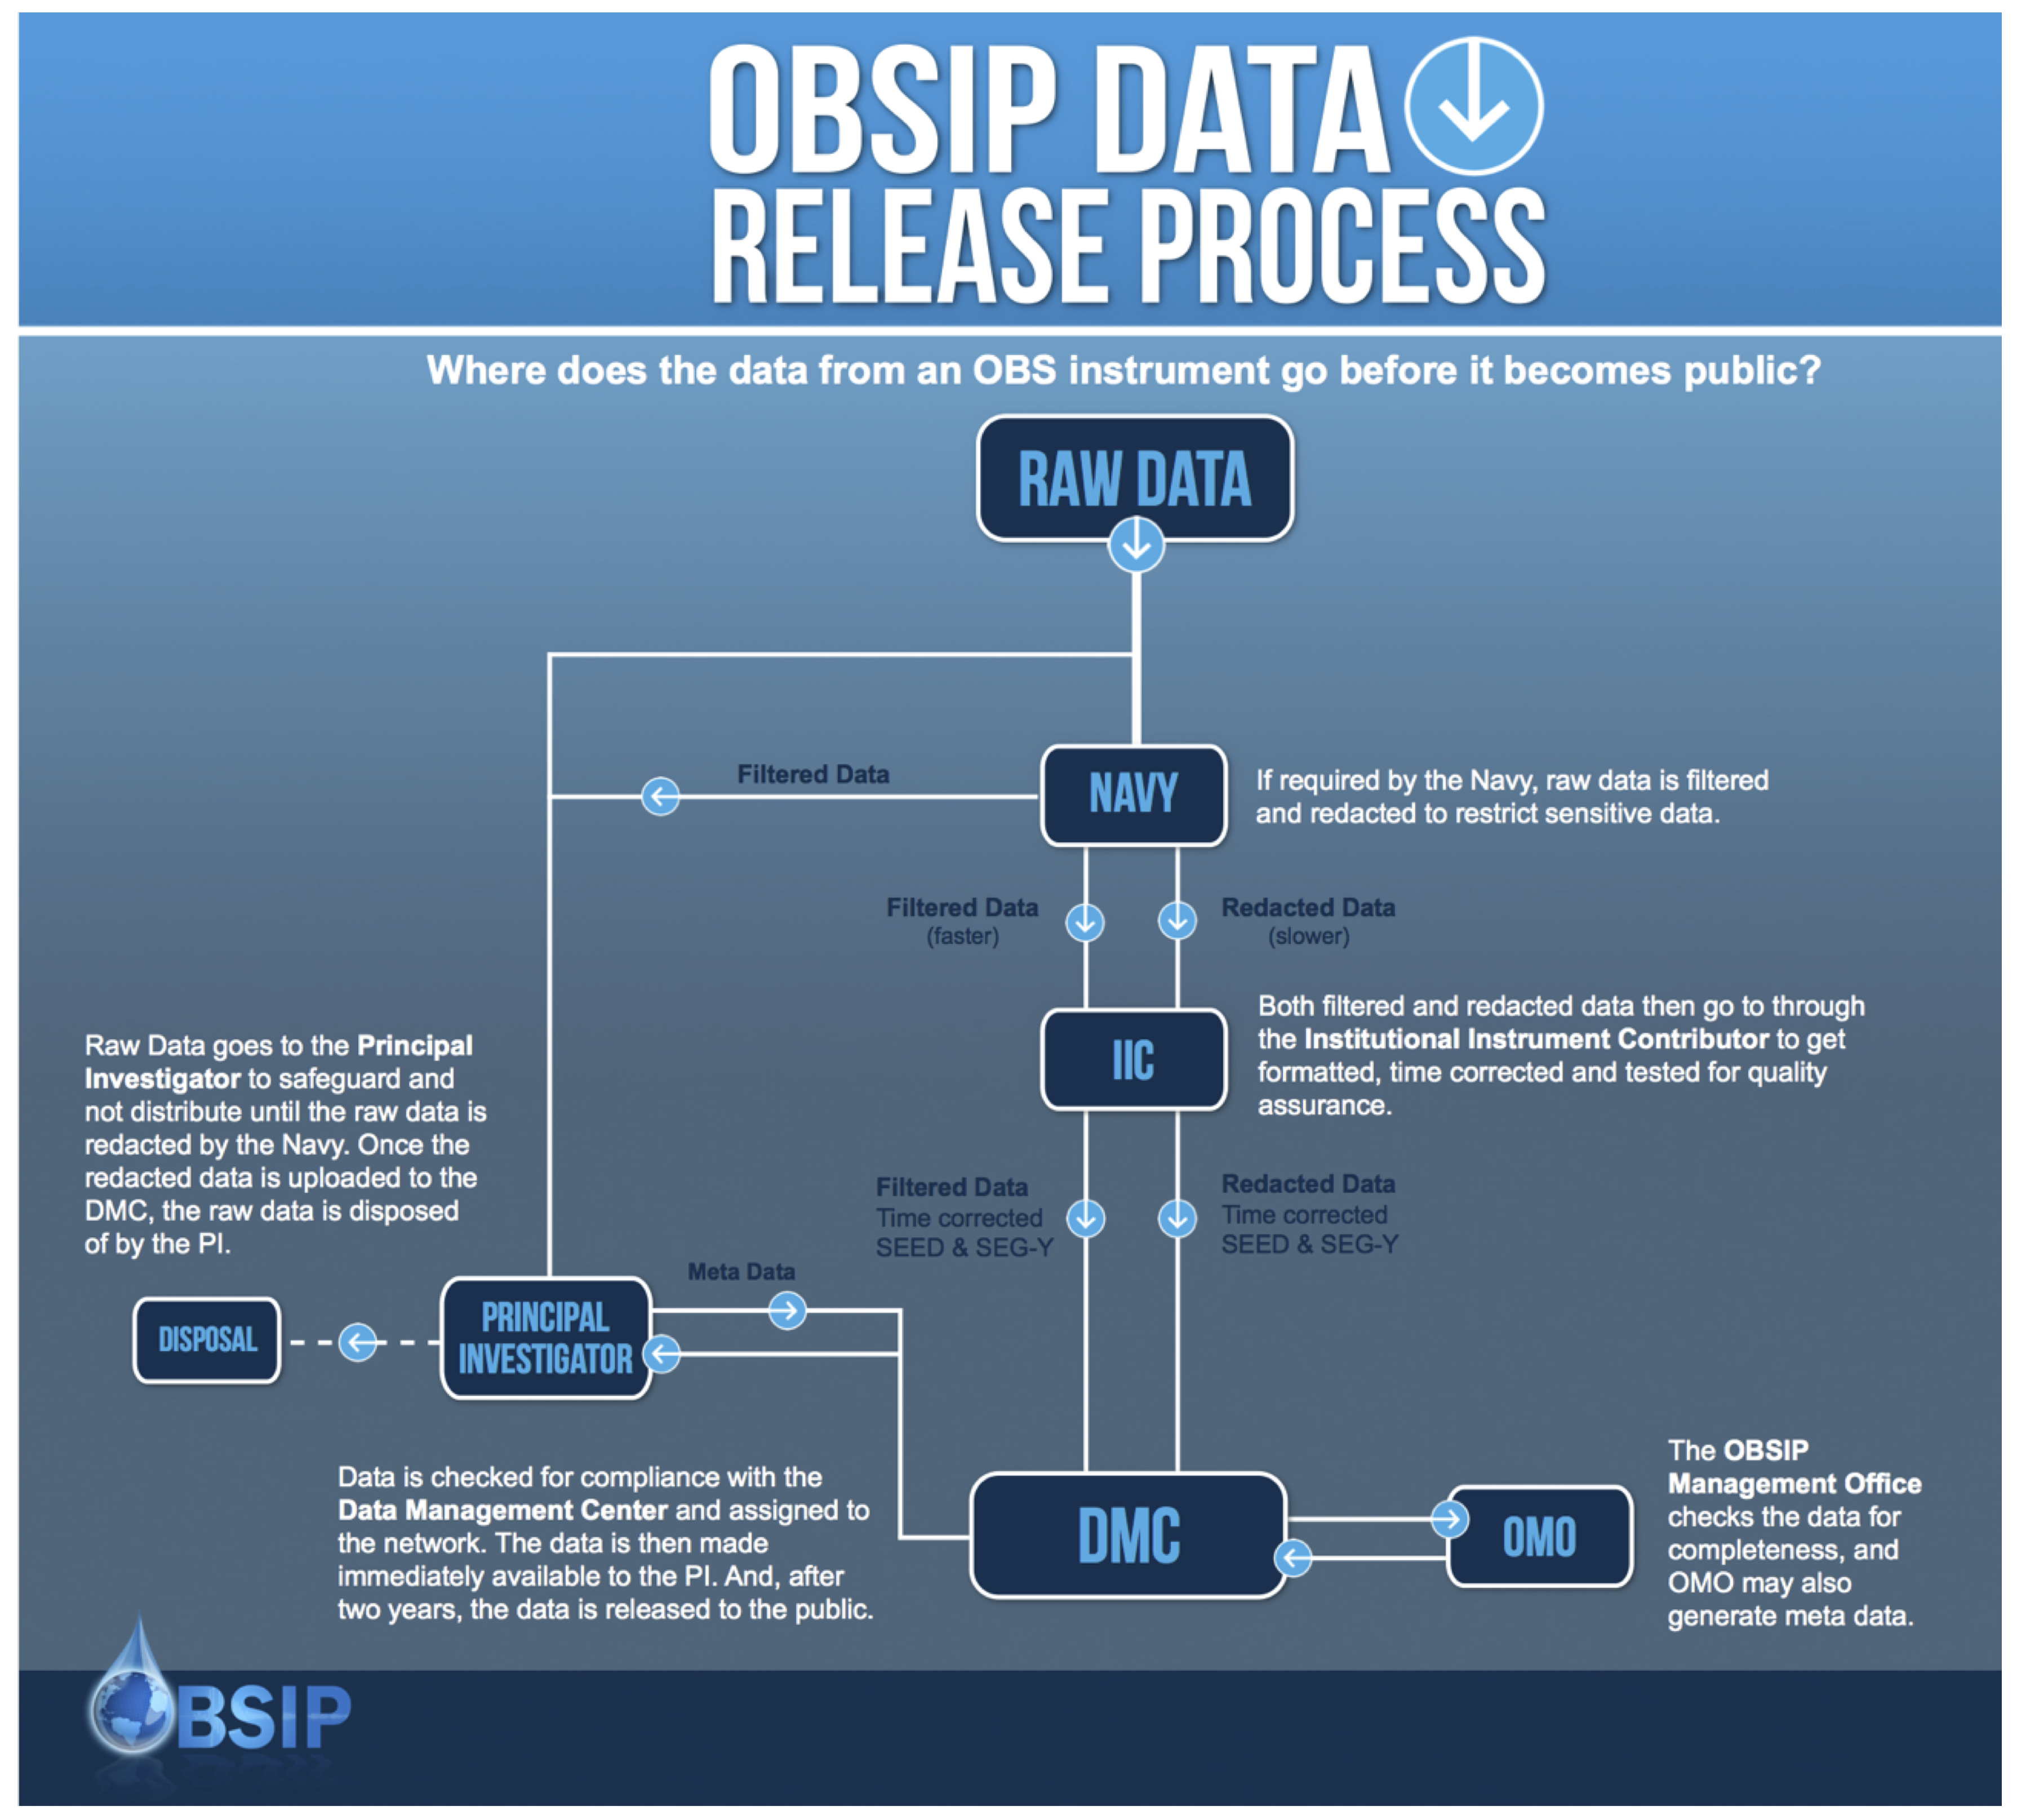 OBSIP Data Release Process